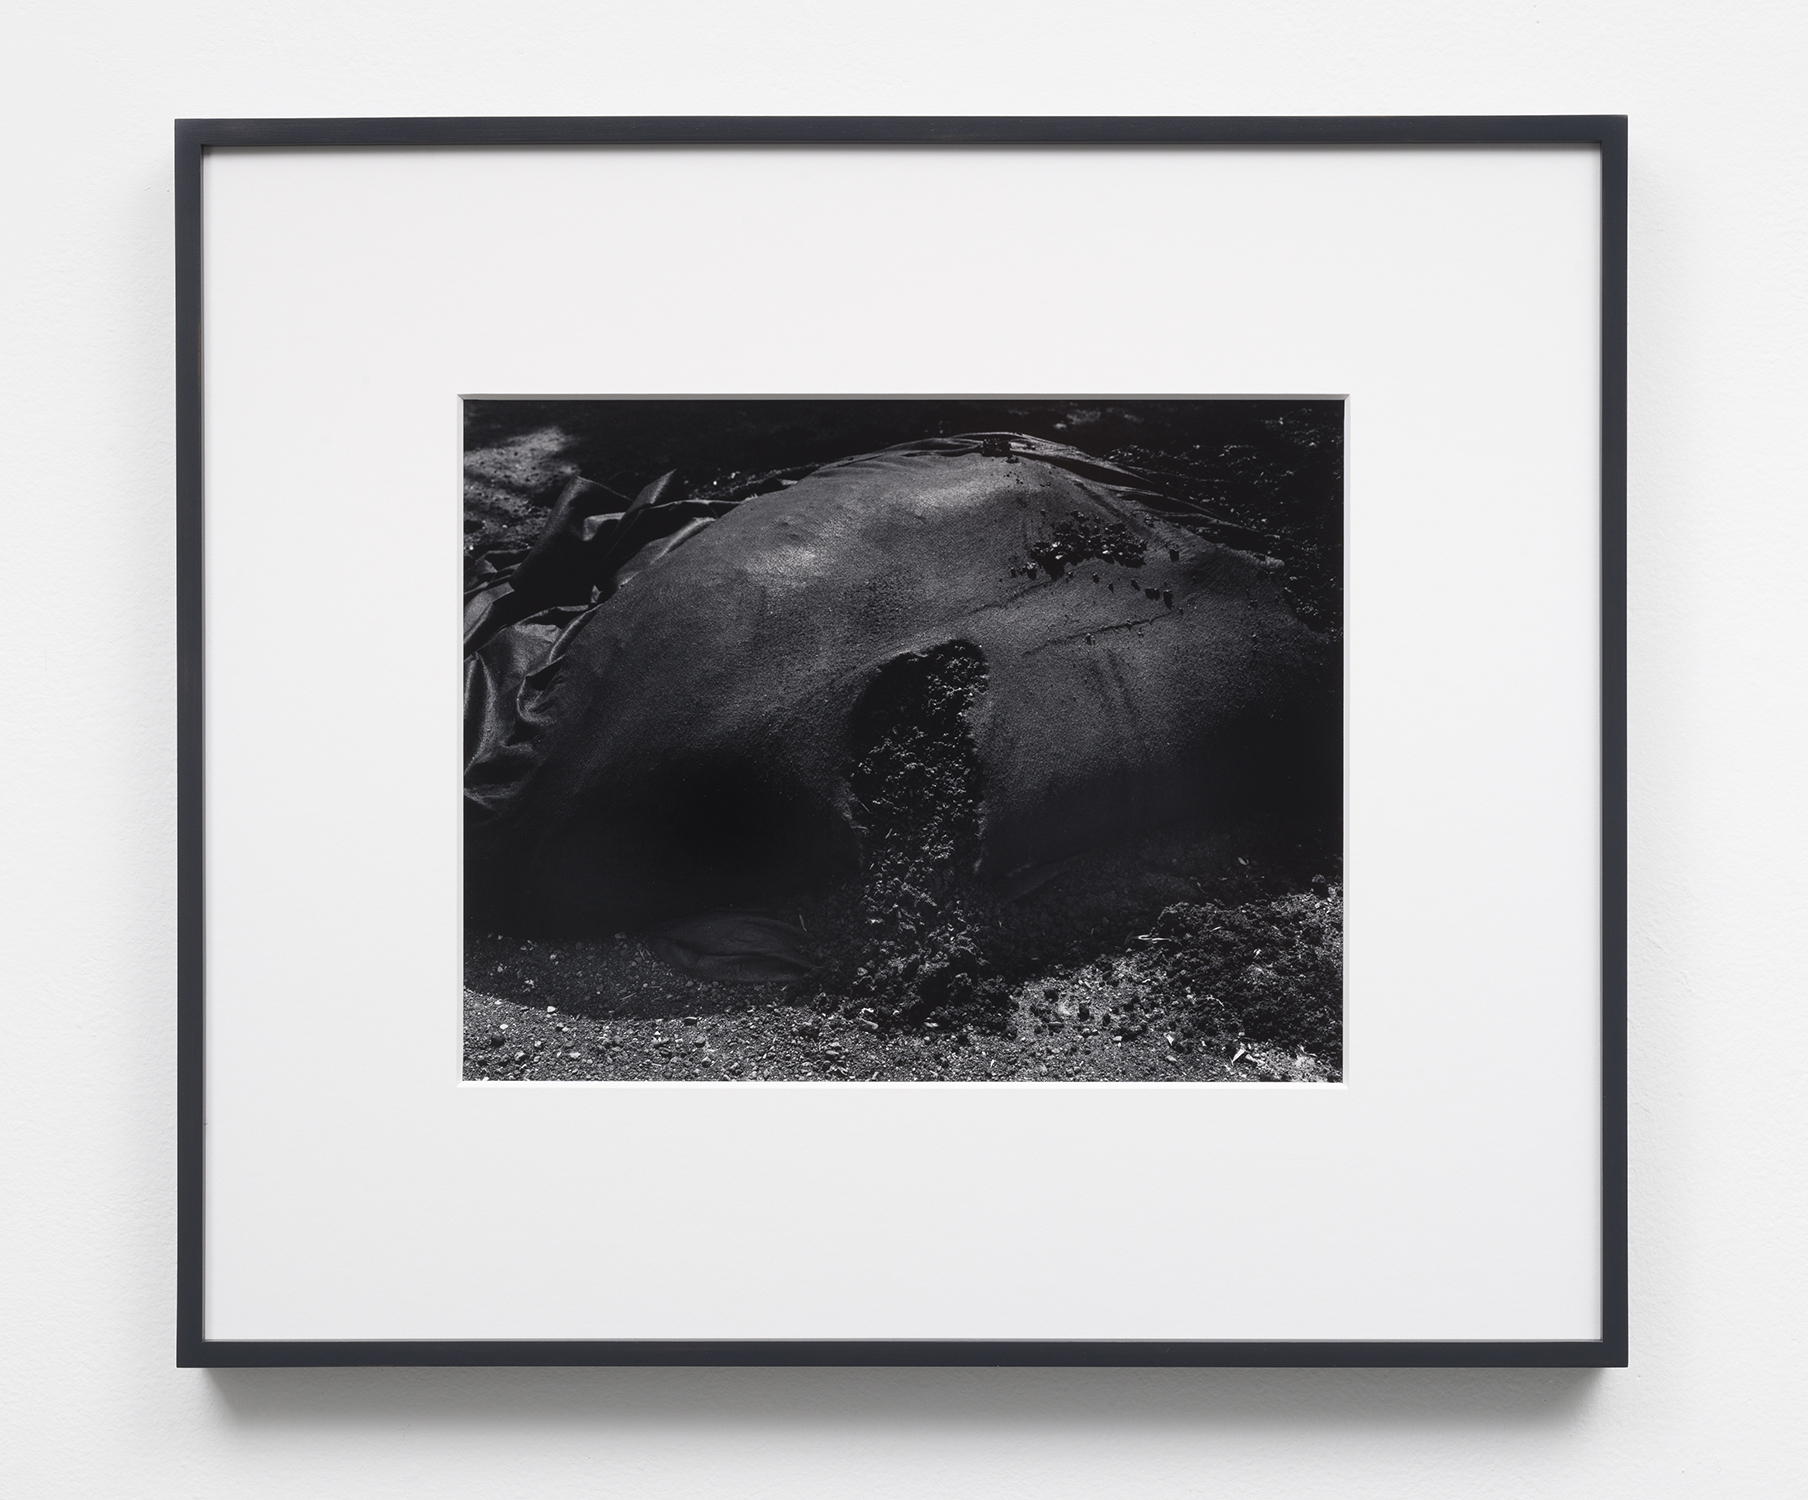 Flesh,  10.25 x 13.25,selenium toned, silver gelatin print in 8 ply over-mat (18 x 21),painted wood frame, 2018